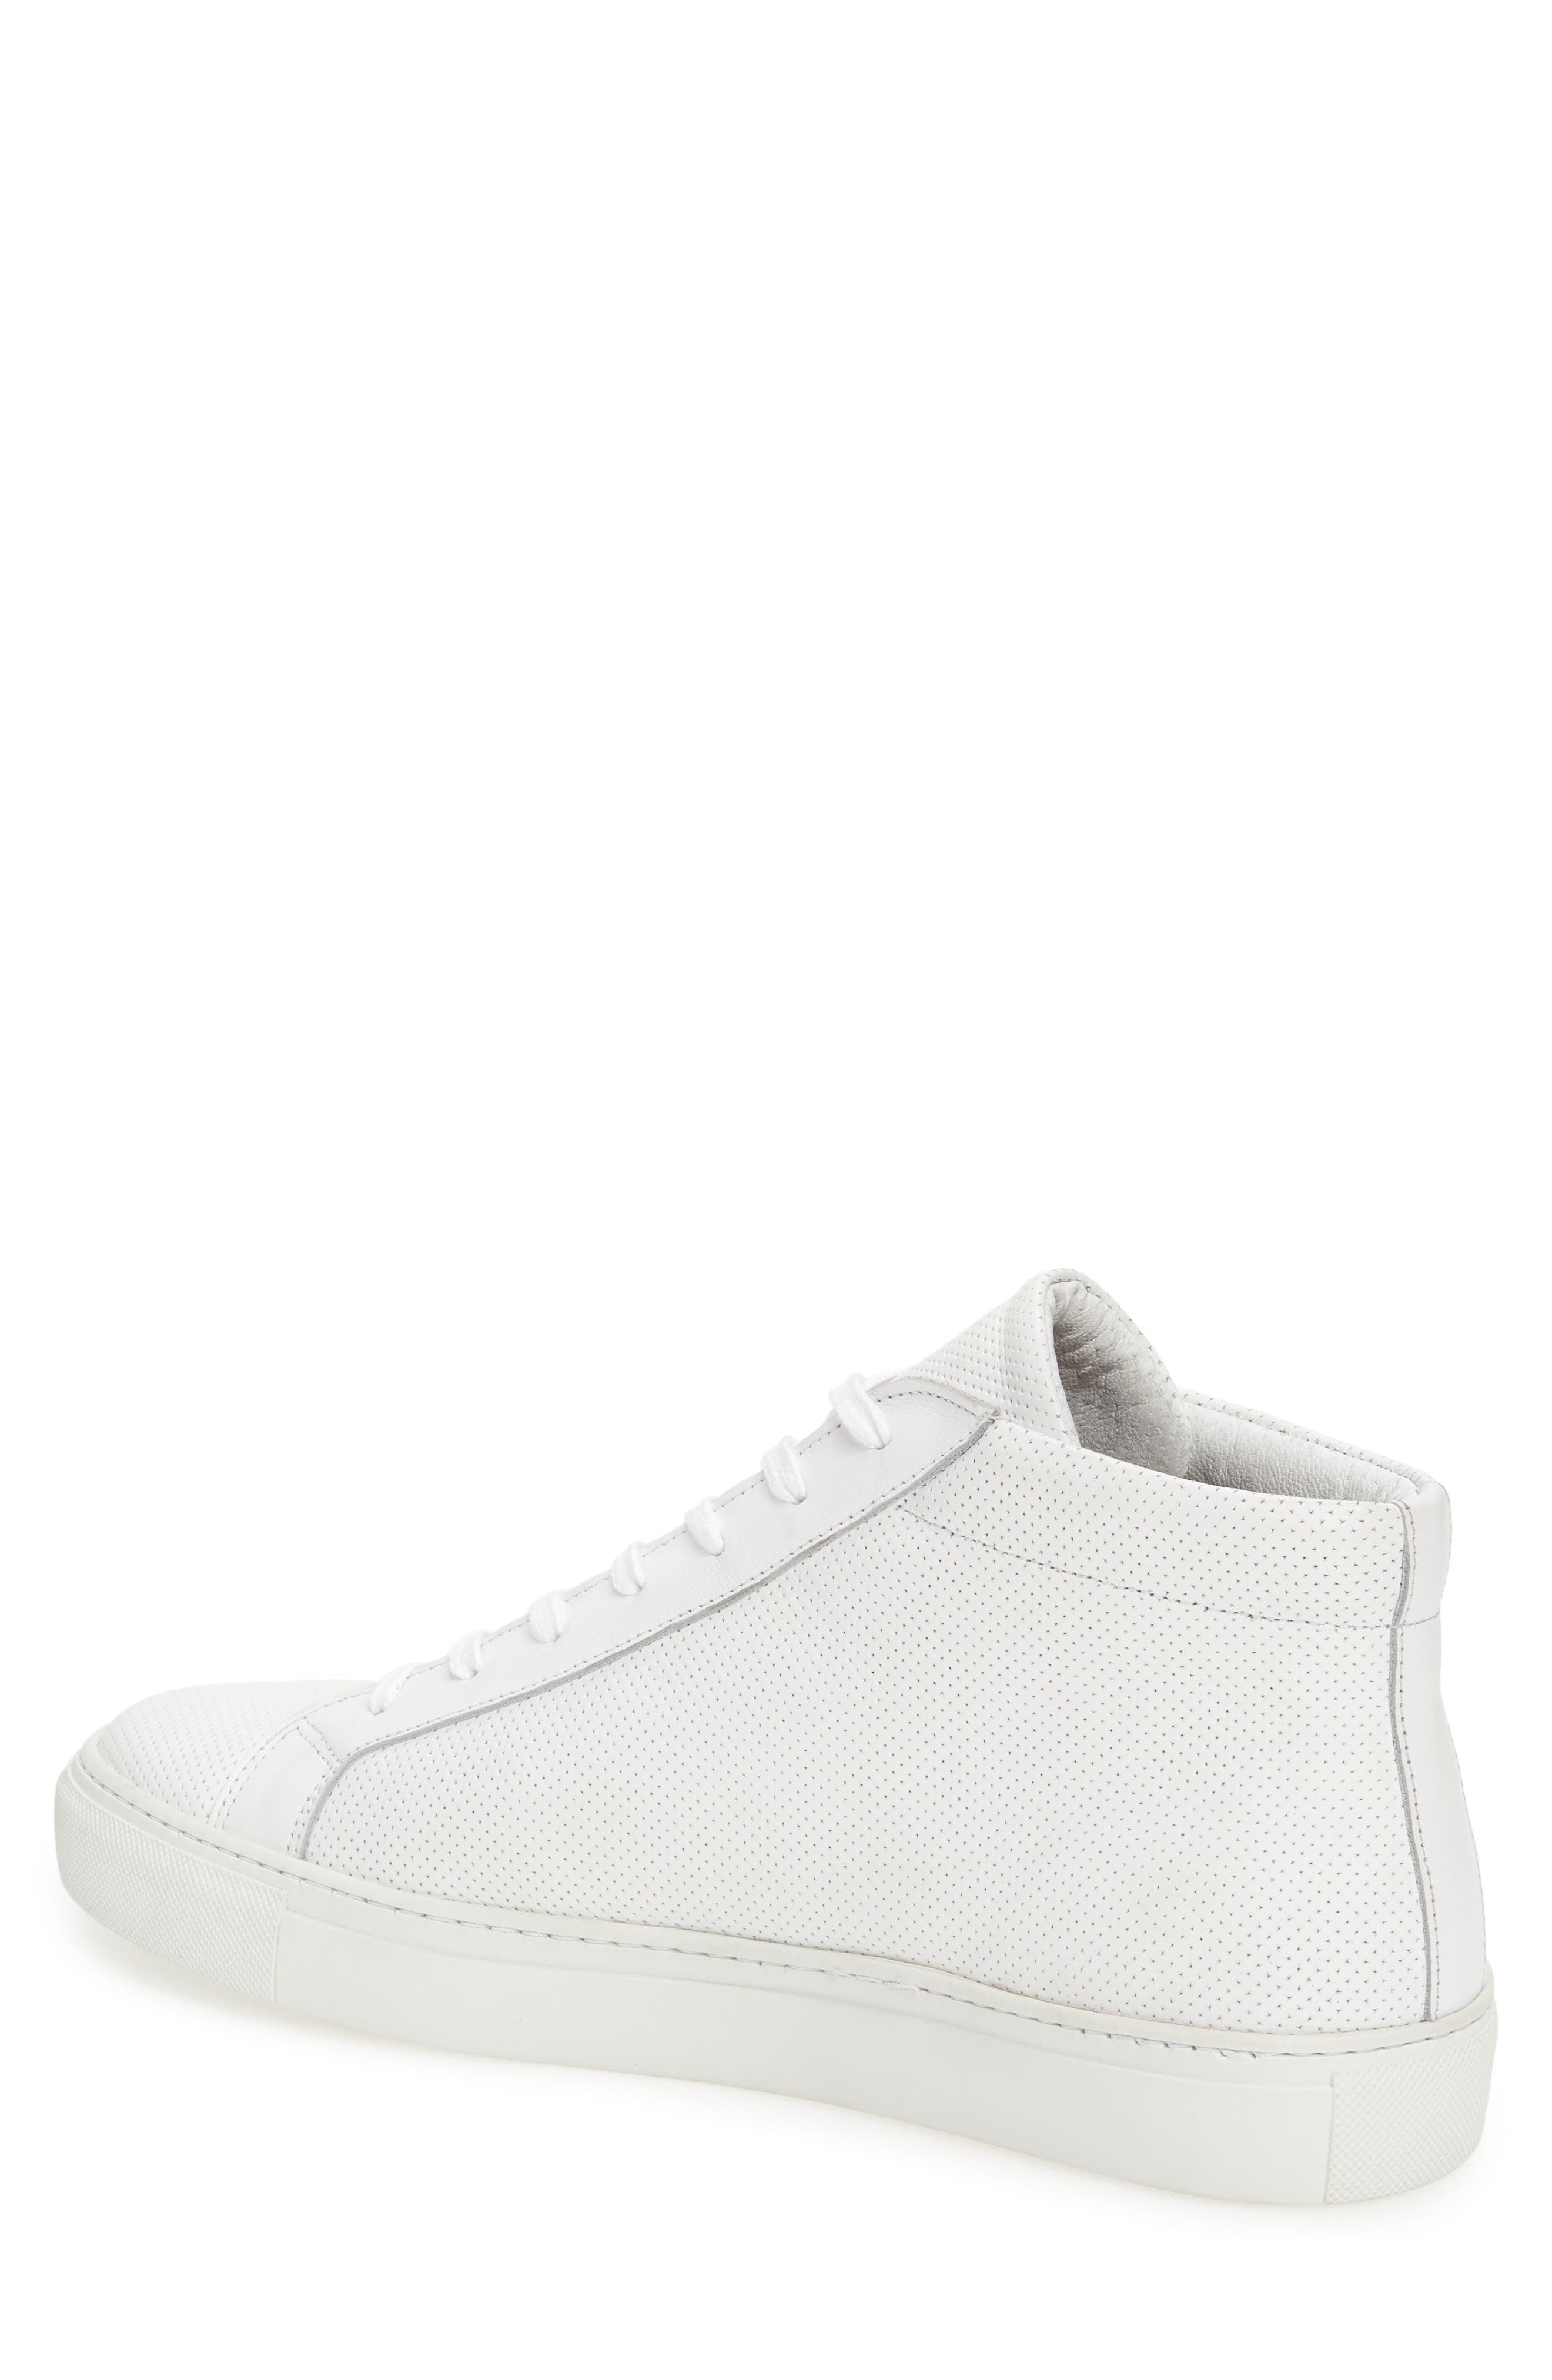 Deacon Mid Sneaker,                             Alternate thumbnail 2, color,                             WHITE PERFORATED LEATHER